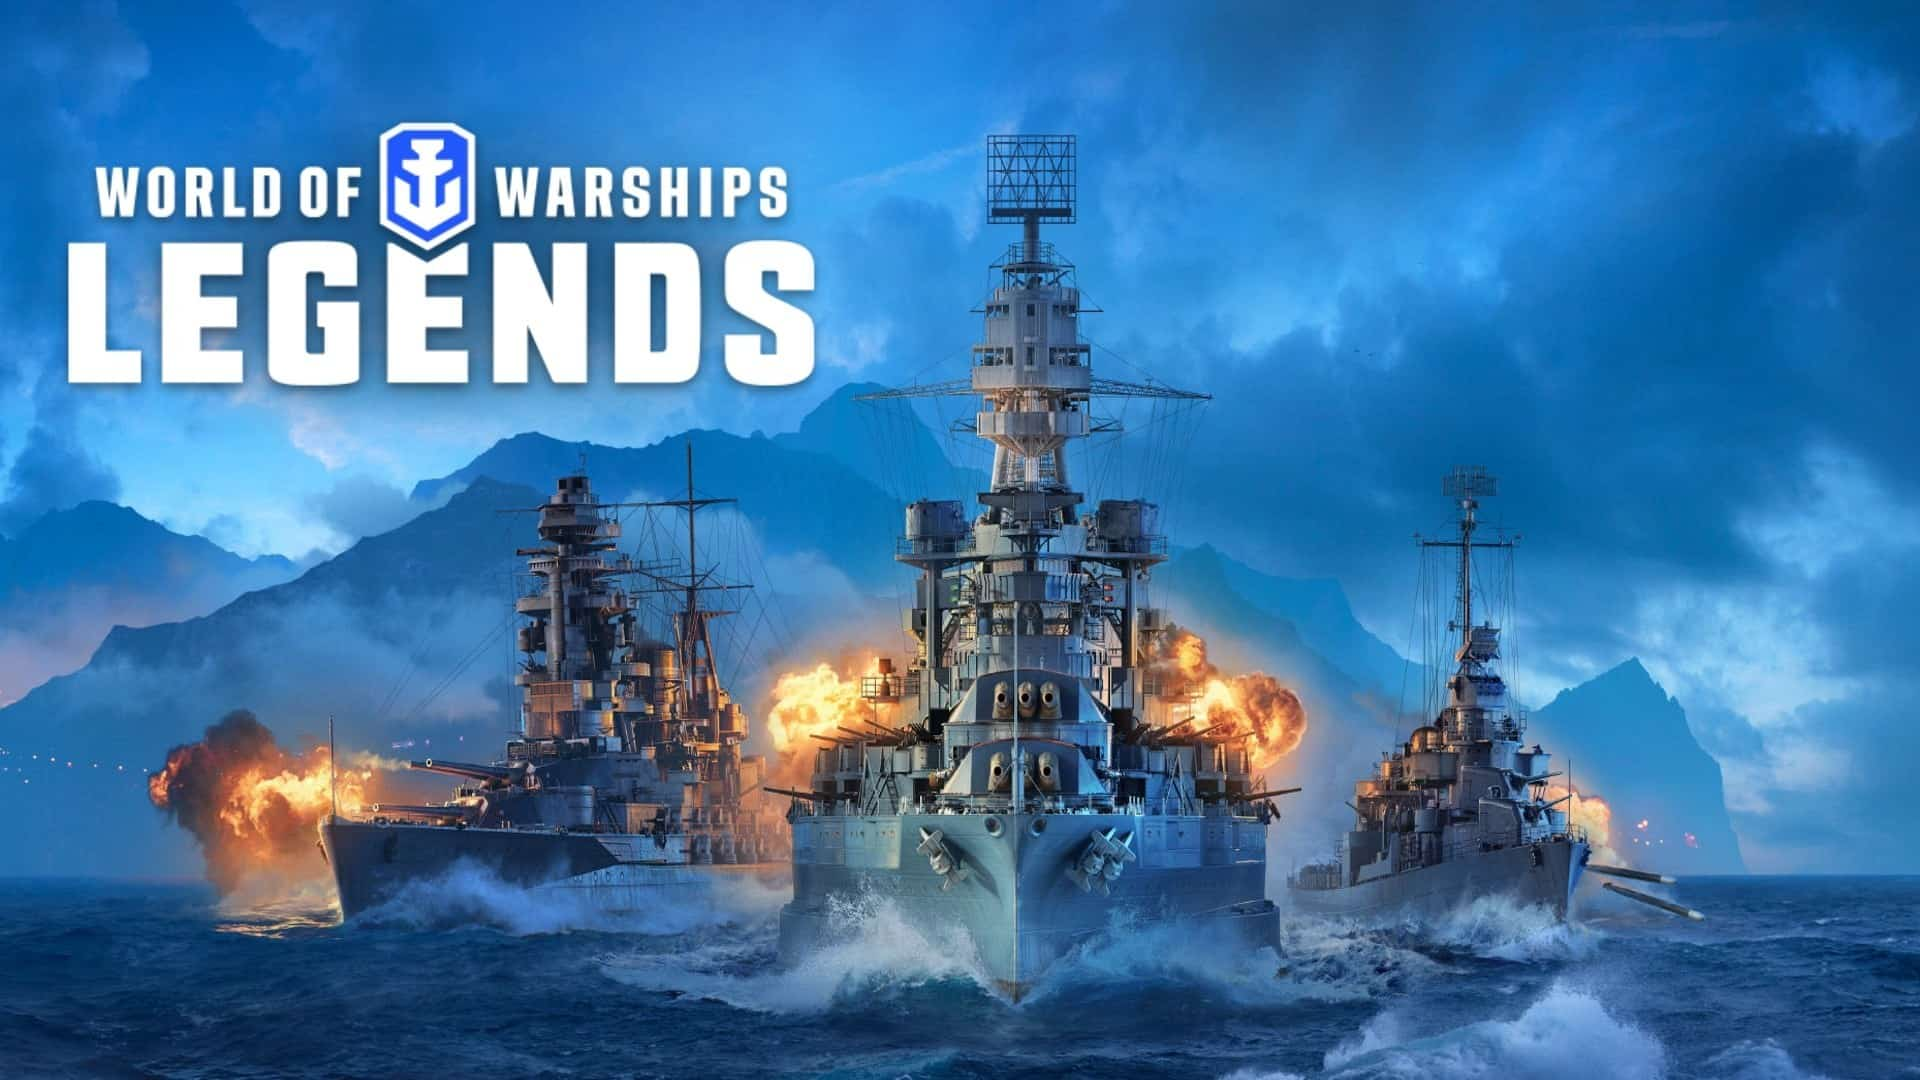 Anchors Aweigh, World of Warships: Legends is Available Worldwide